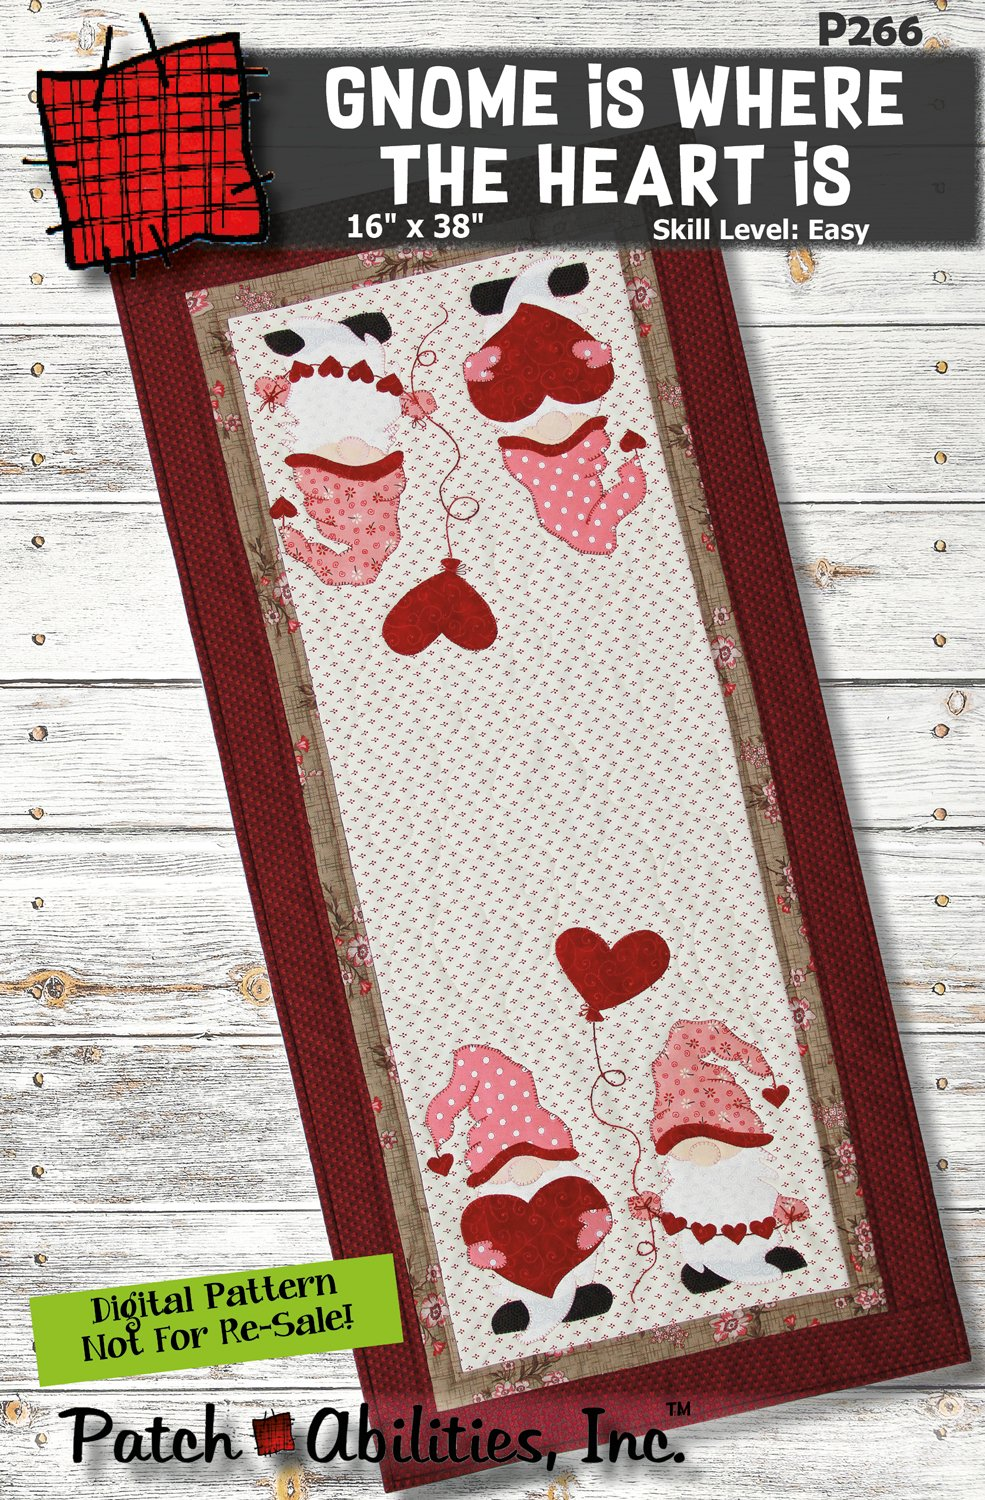 P266 Gnome is Where the Heart is Table Runner - DIGITAL PATTERN